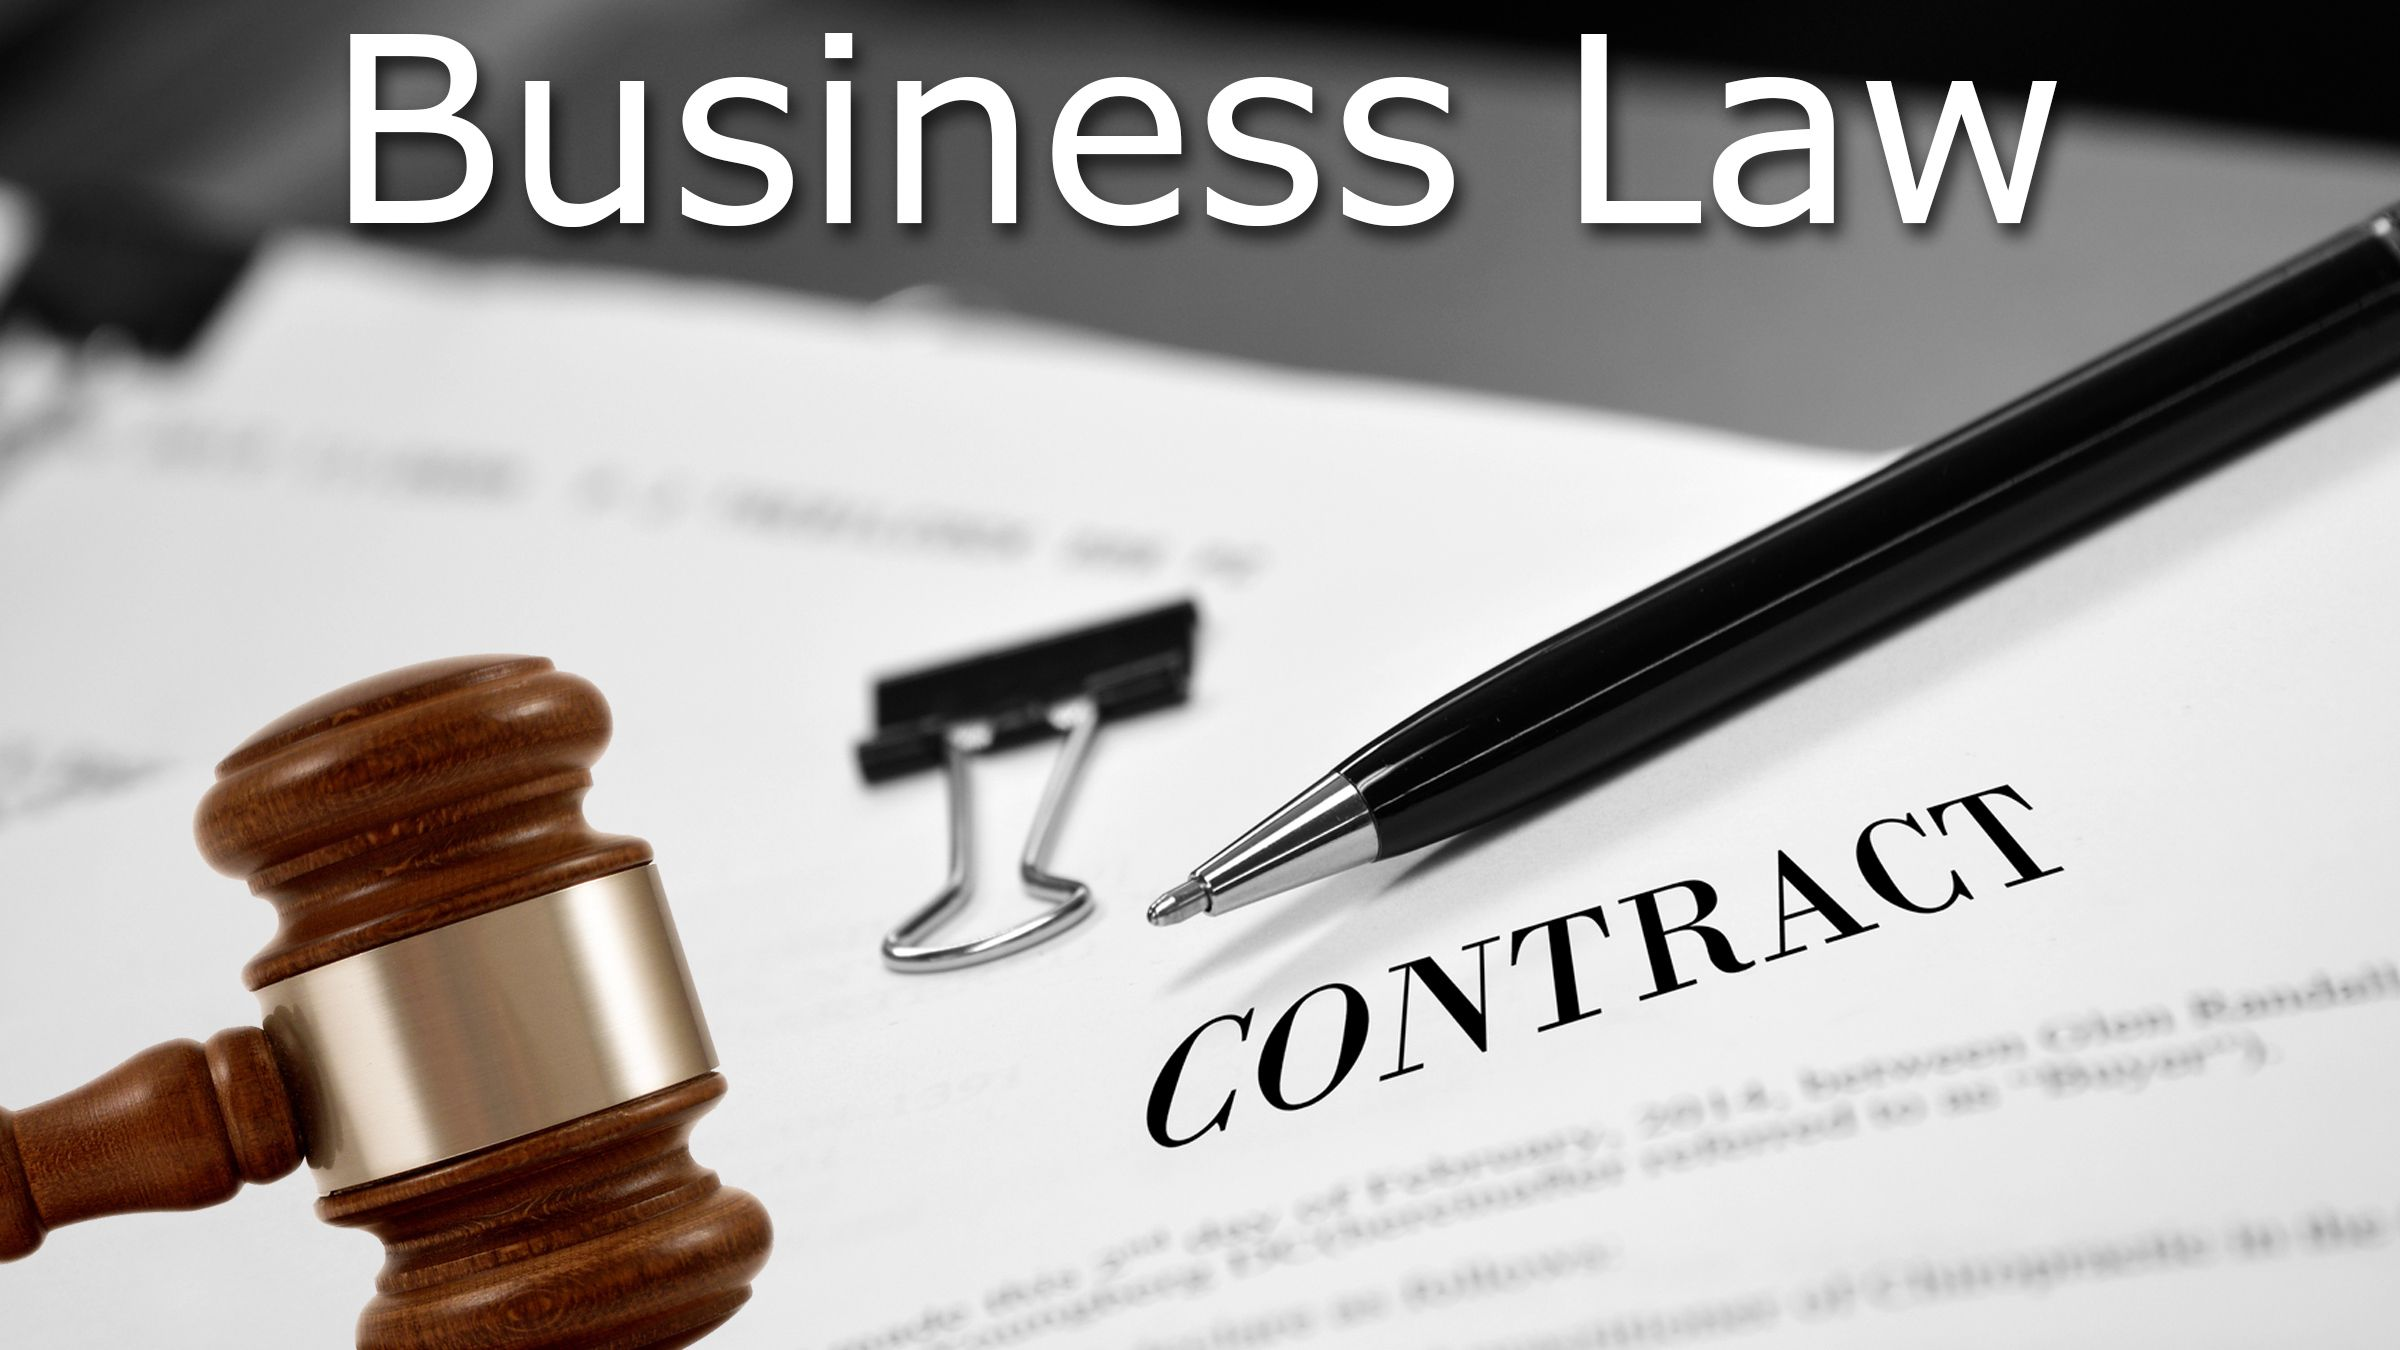 Knowledge Of Business Law Can Give You The Ability To Recognise Potential Issues And Manage Legal Risk Hawle Business Law Small Business Lawyer Legal Business